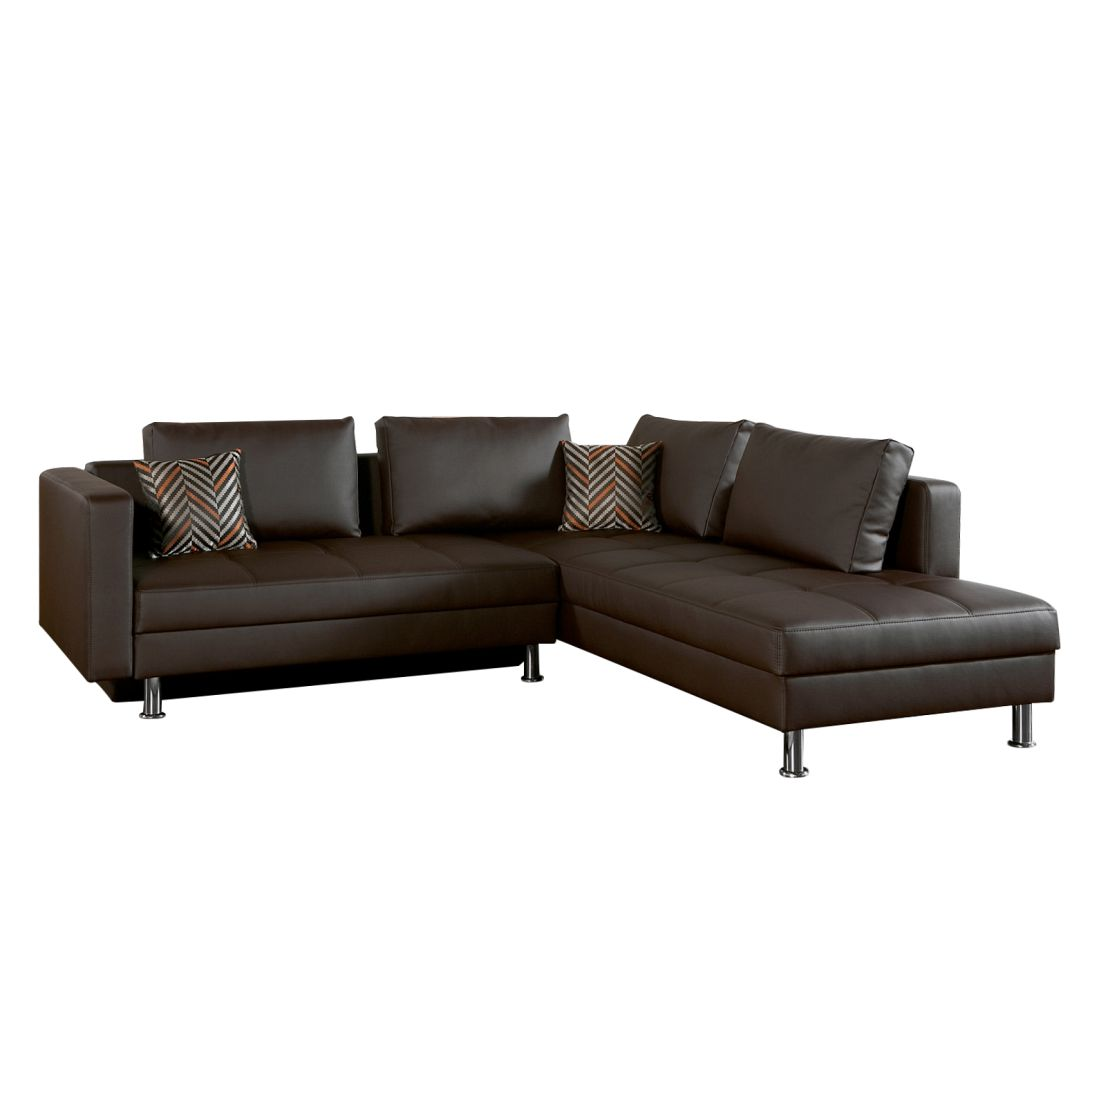 ecksofa blaxton mit schlaffunktion beidseitig. Black Bedroom Furniture Sets. Home Design Ideas